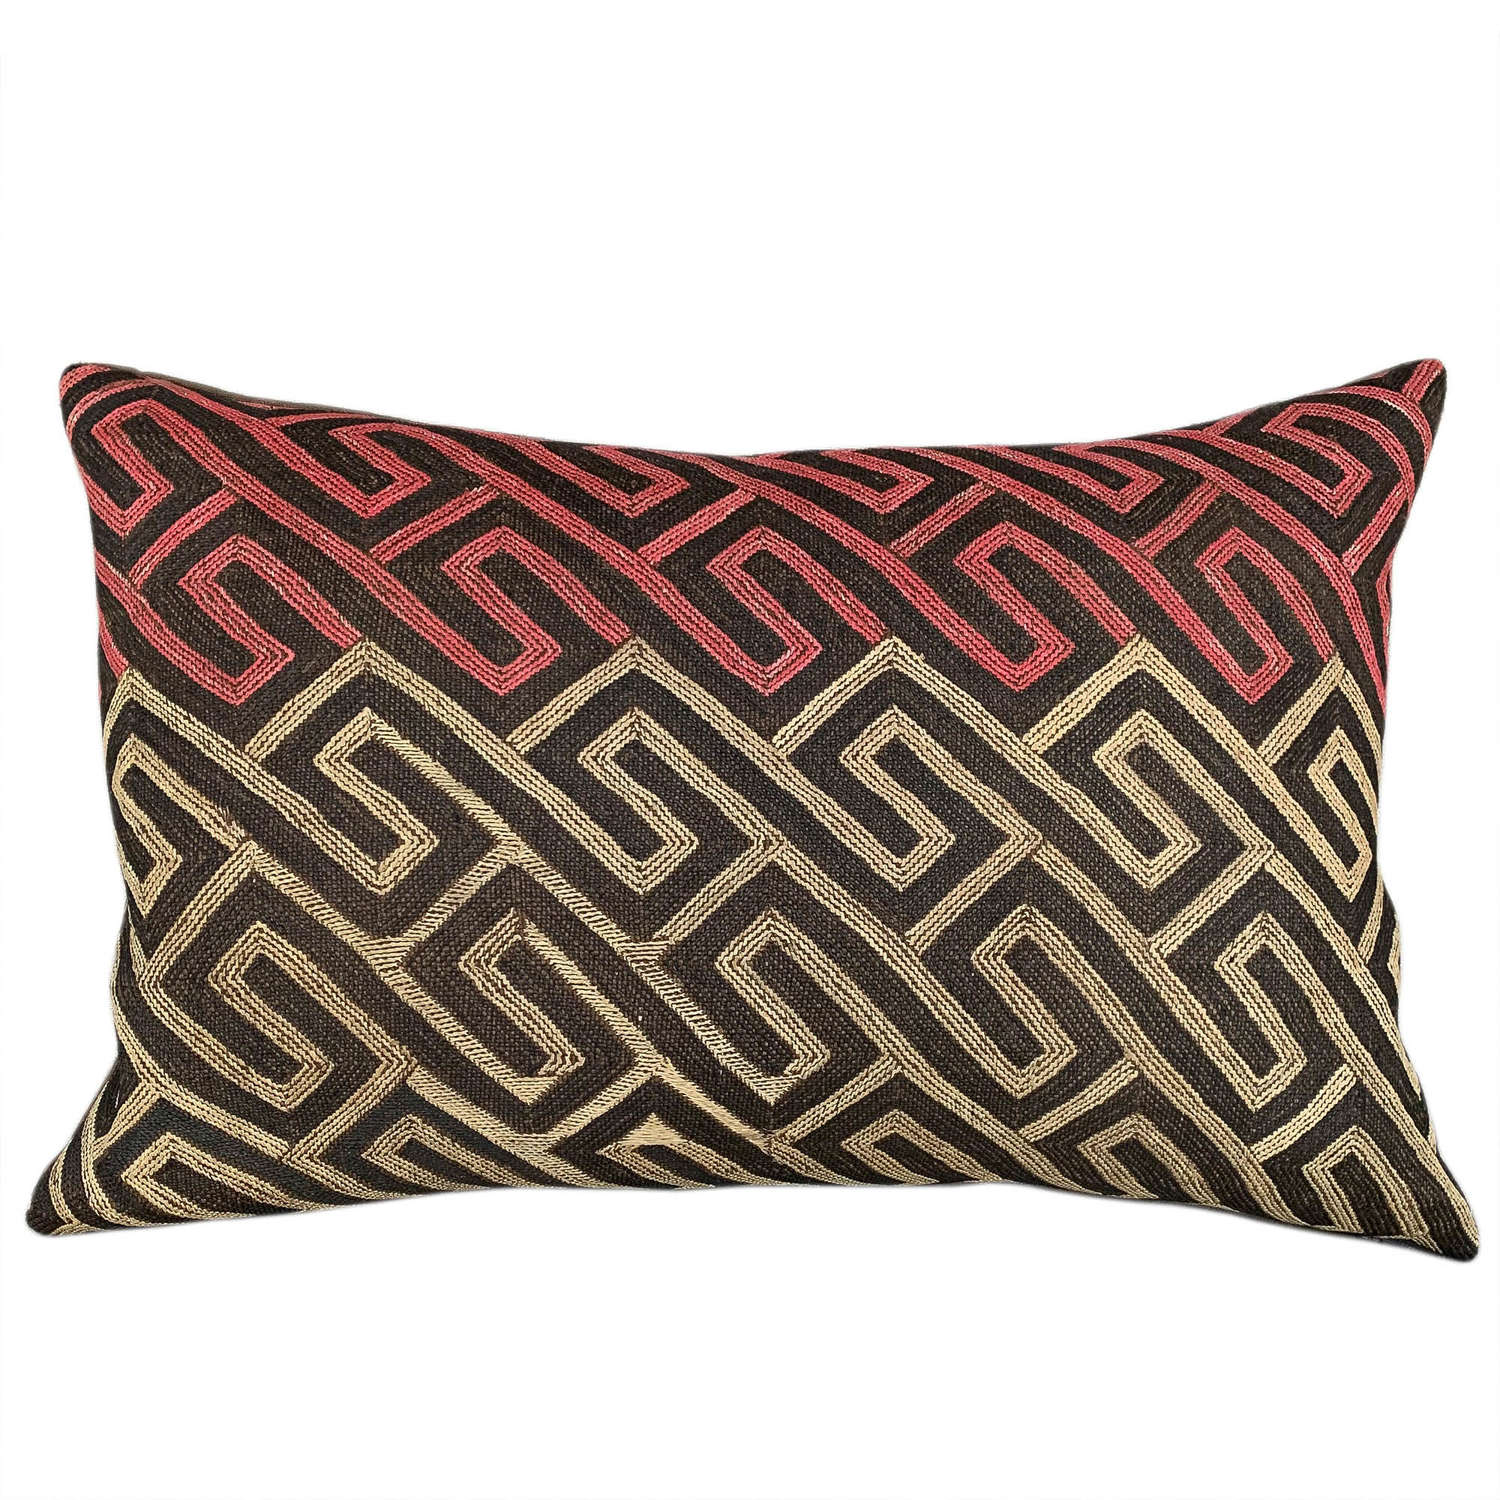 Kuba cloth cushion with pink